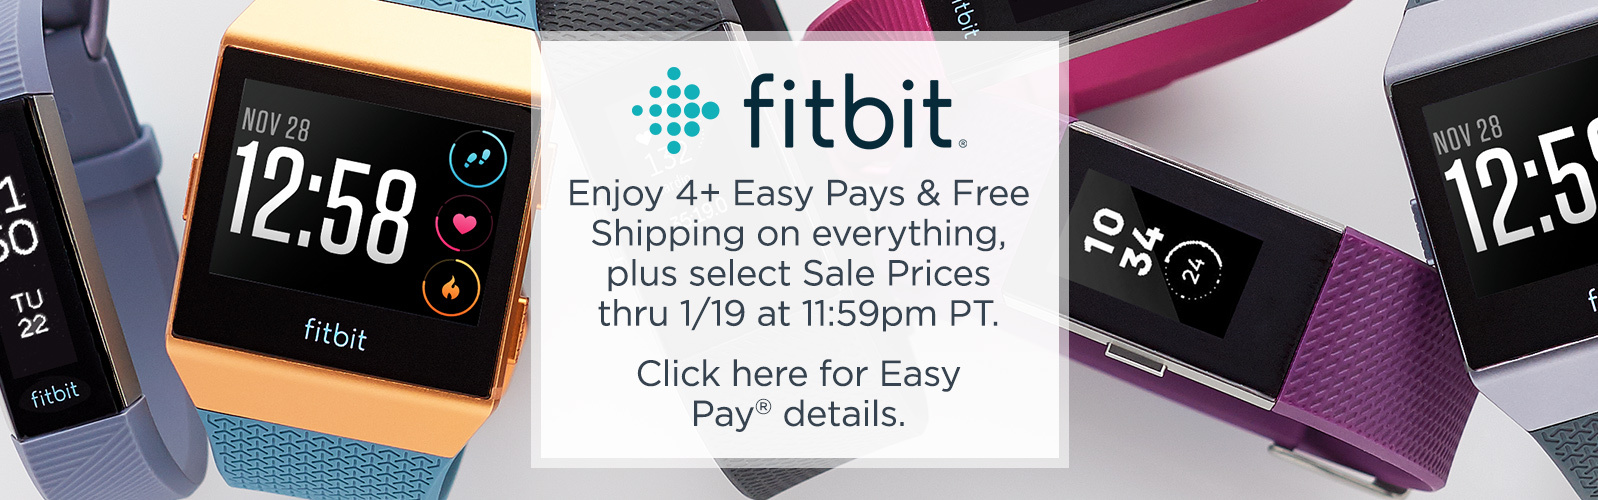 fitbit - Gear up with 4+ Easy Pays & Free Shipping on everything thru 1/6 at 11:59pm PT.  Click here for Easy Pay® details.